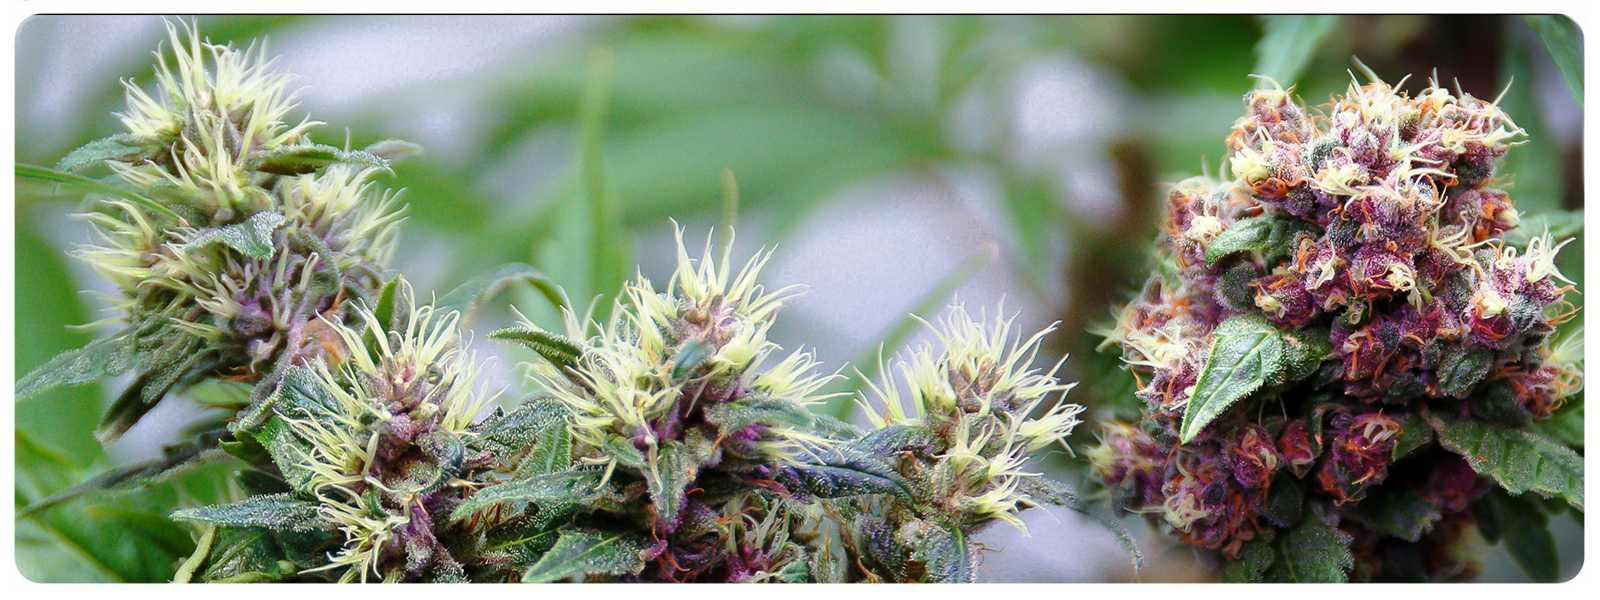 Killingfields regular cannabis seeds for the strain hunters and oldchool genetic lovers